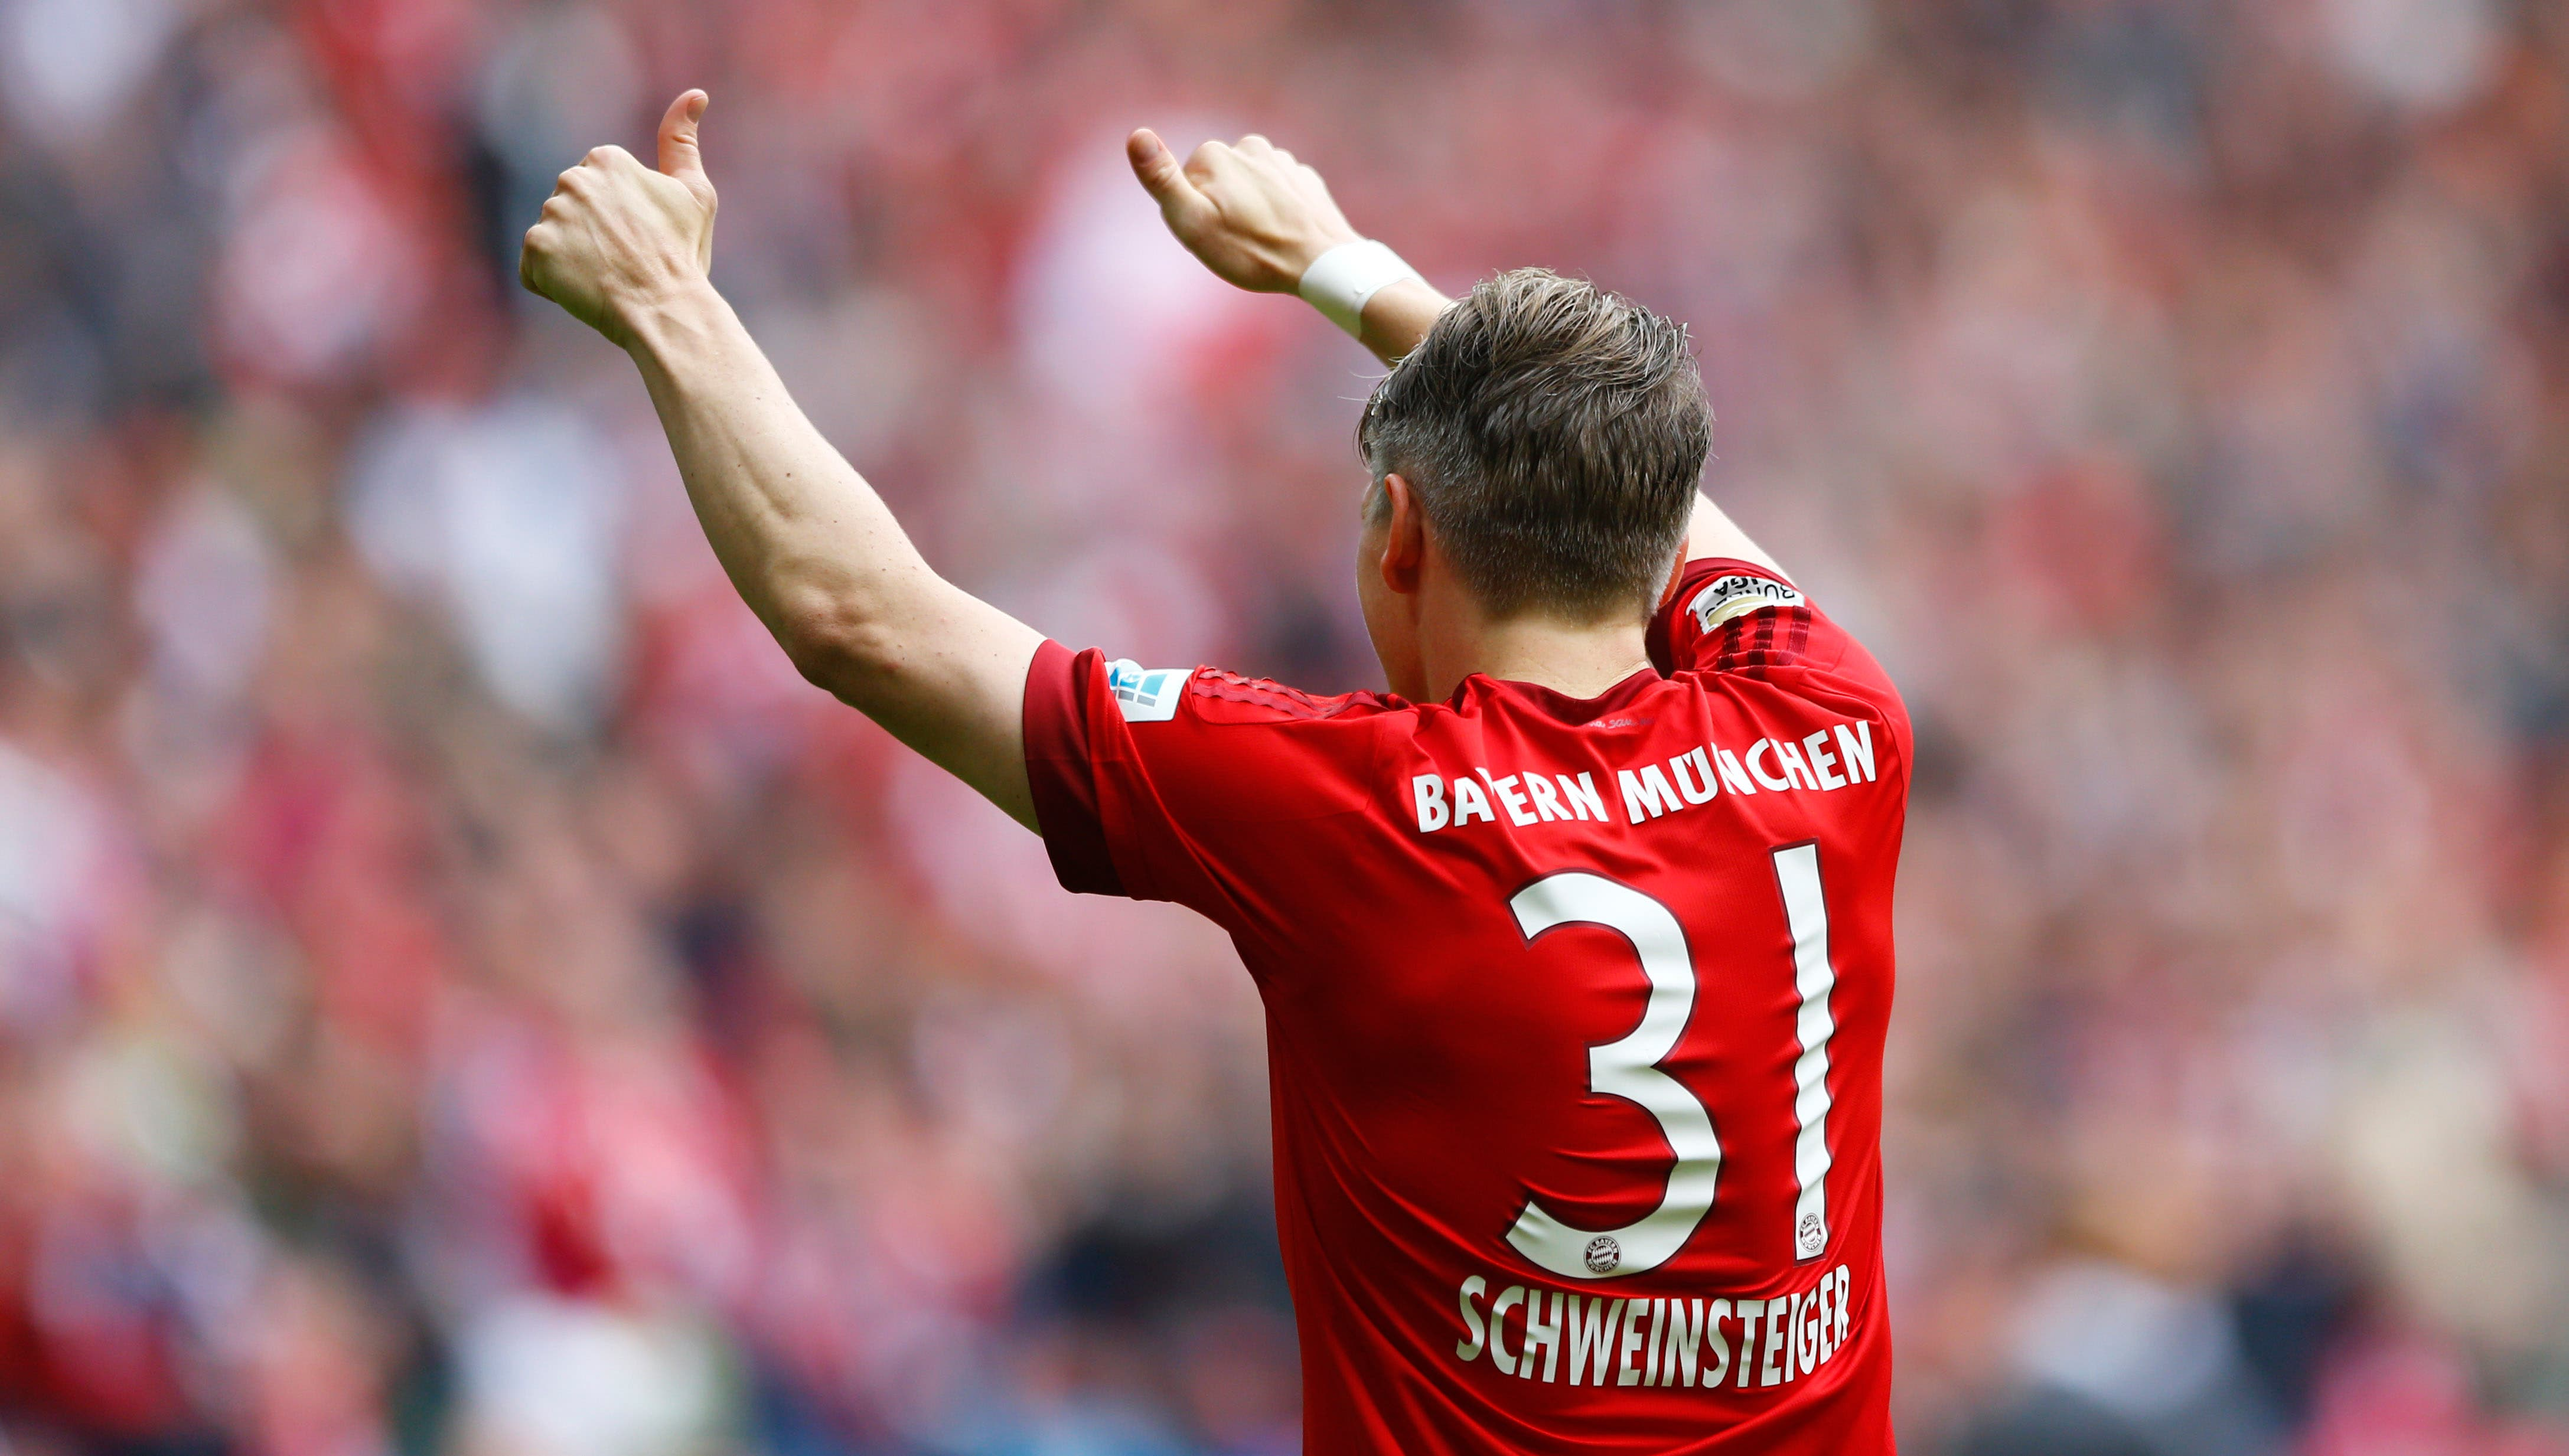 Bayern's Bastian Schweinsteiger celebrates after scoring his side's second goal during the German first division Bundesliga soccer match between FC Bayern Munich and 1. FSV Mainz 05 at the Allianz Arena in Munich, Germany, on Saturday, May 23, 2015. (AP Photo/Matthias Schrader)